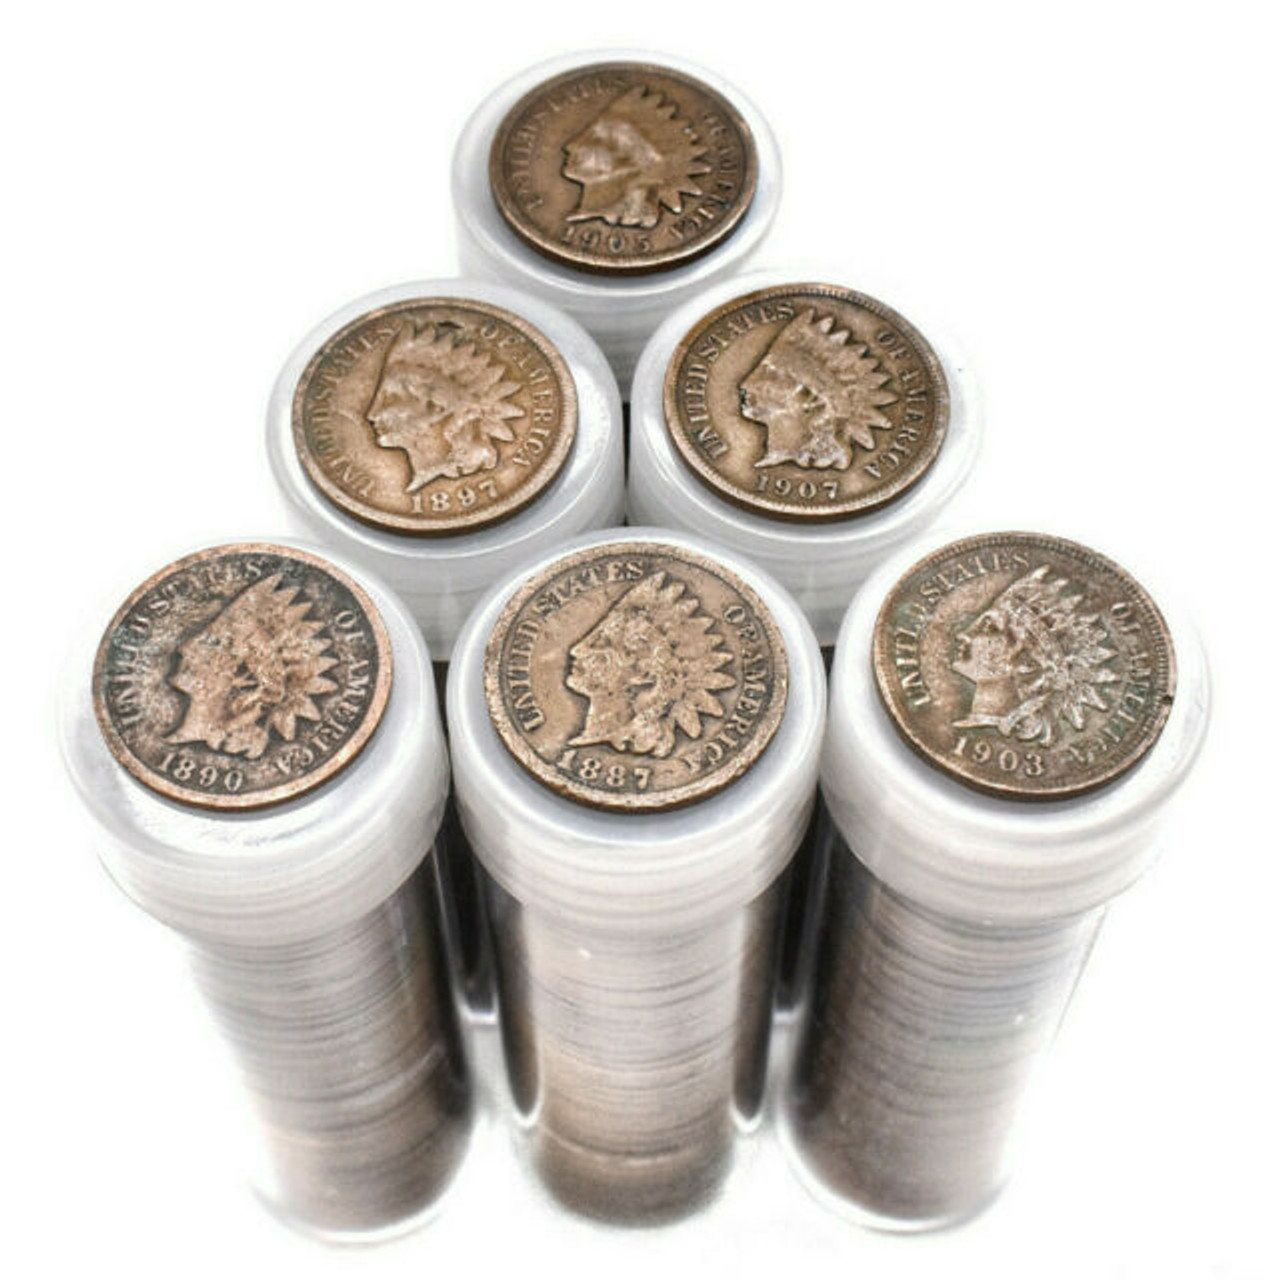 1859 1909 Indian Head Cent Roll Of 50 Bullion Shark,4 Prong Dryer Cord To 3 Prong